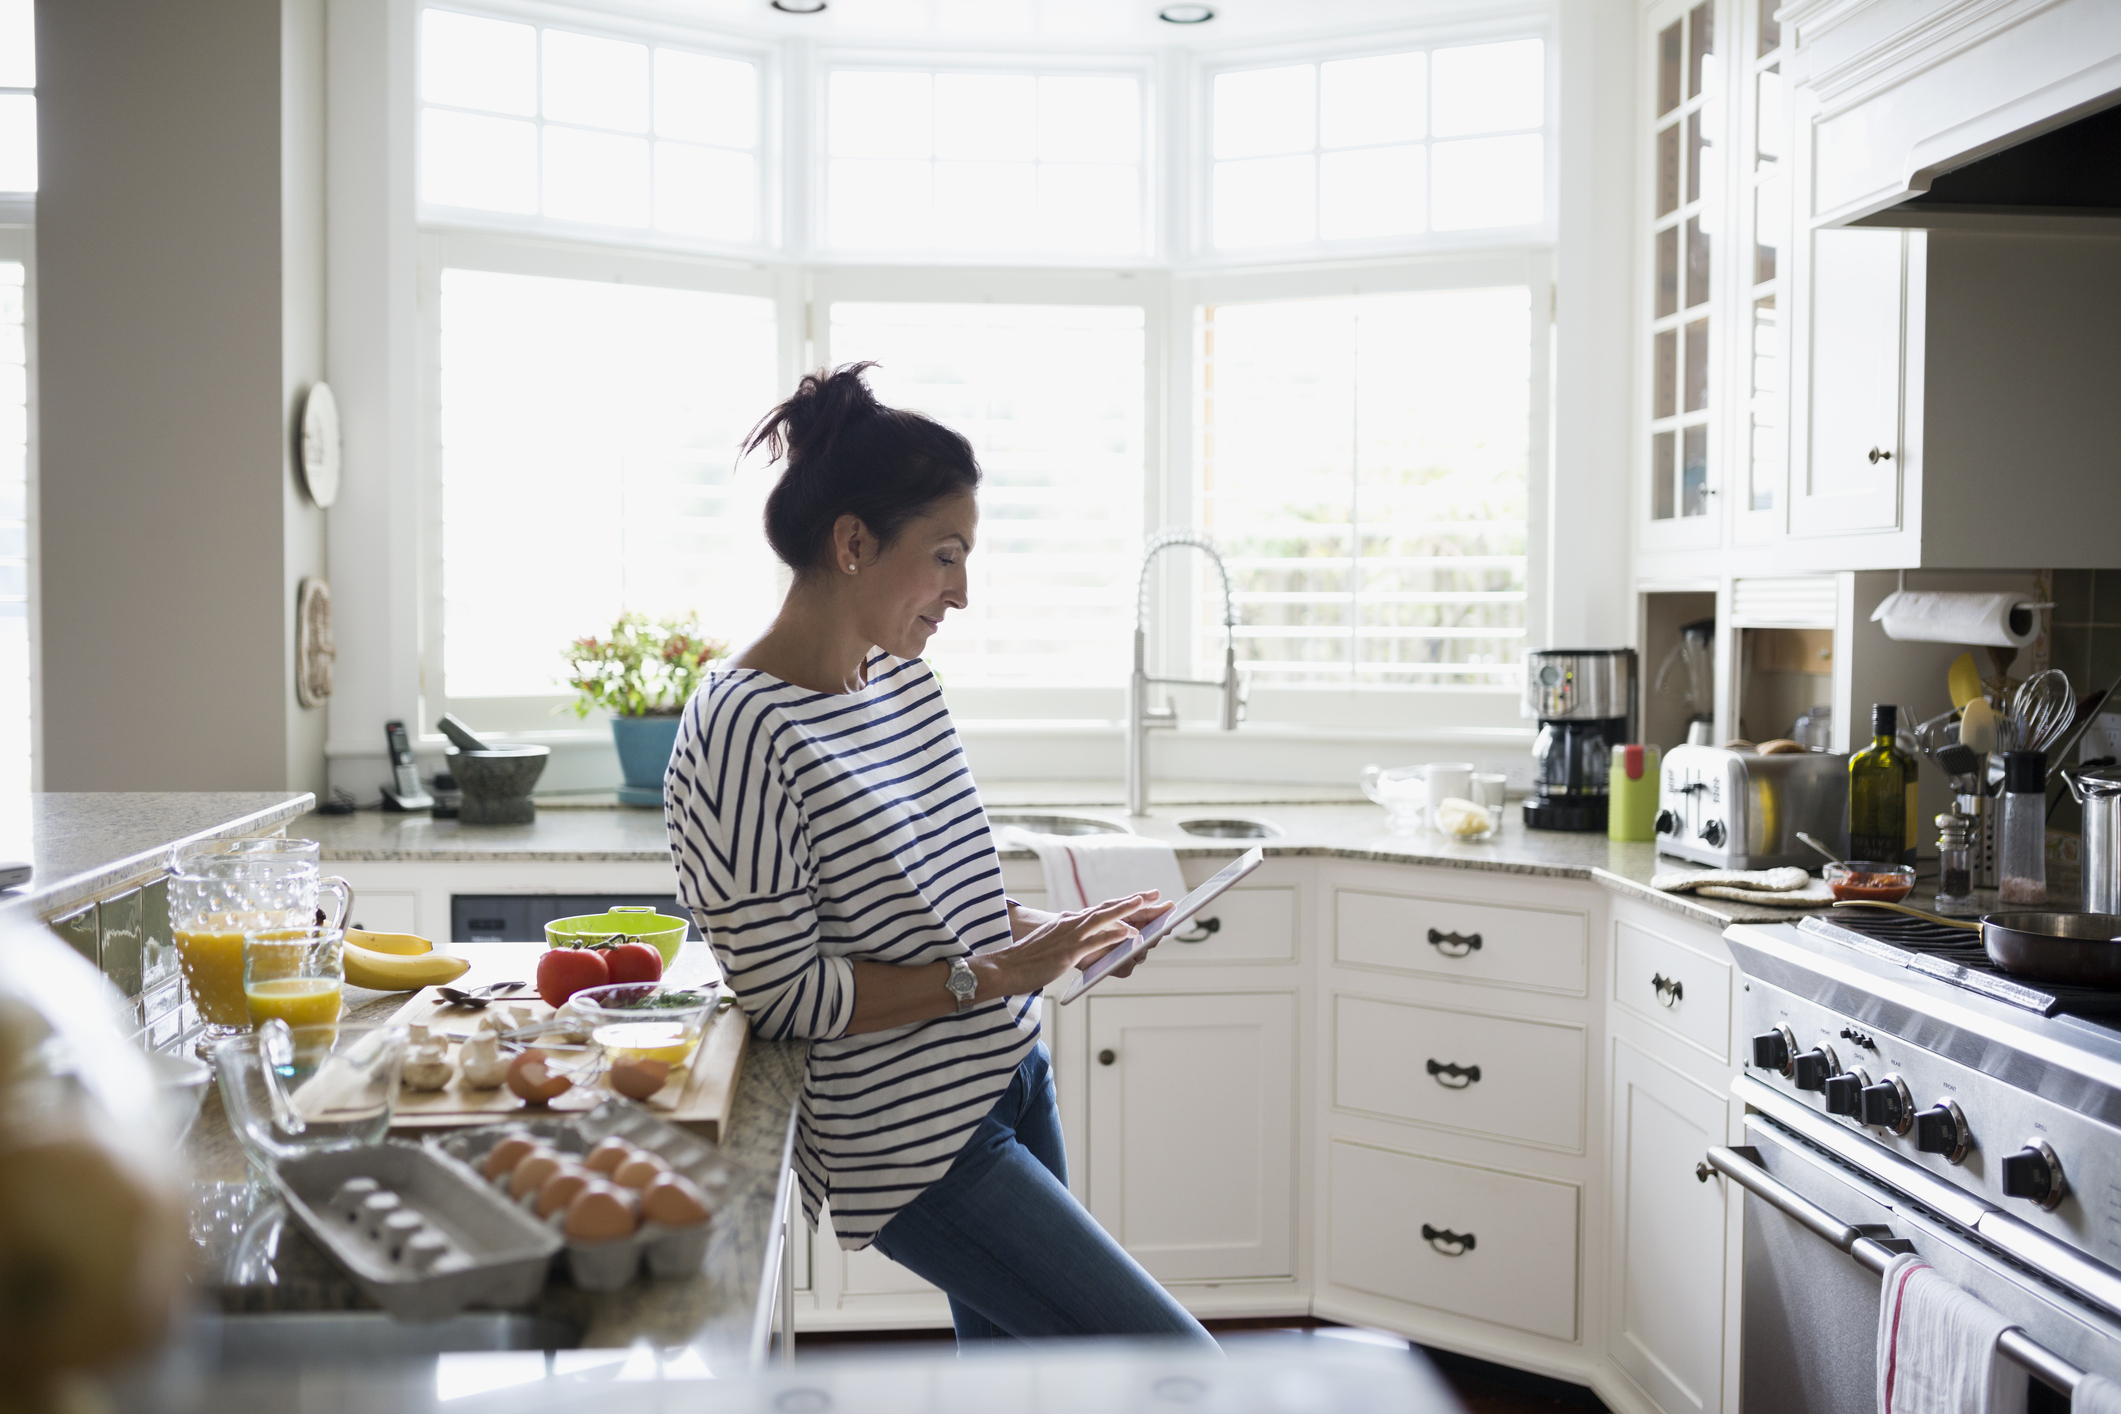 Woman cooking in kitchen looking up recipe on tablet